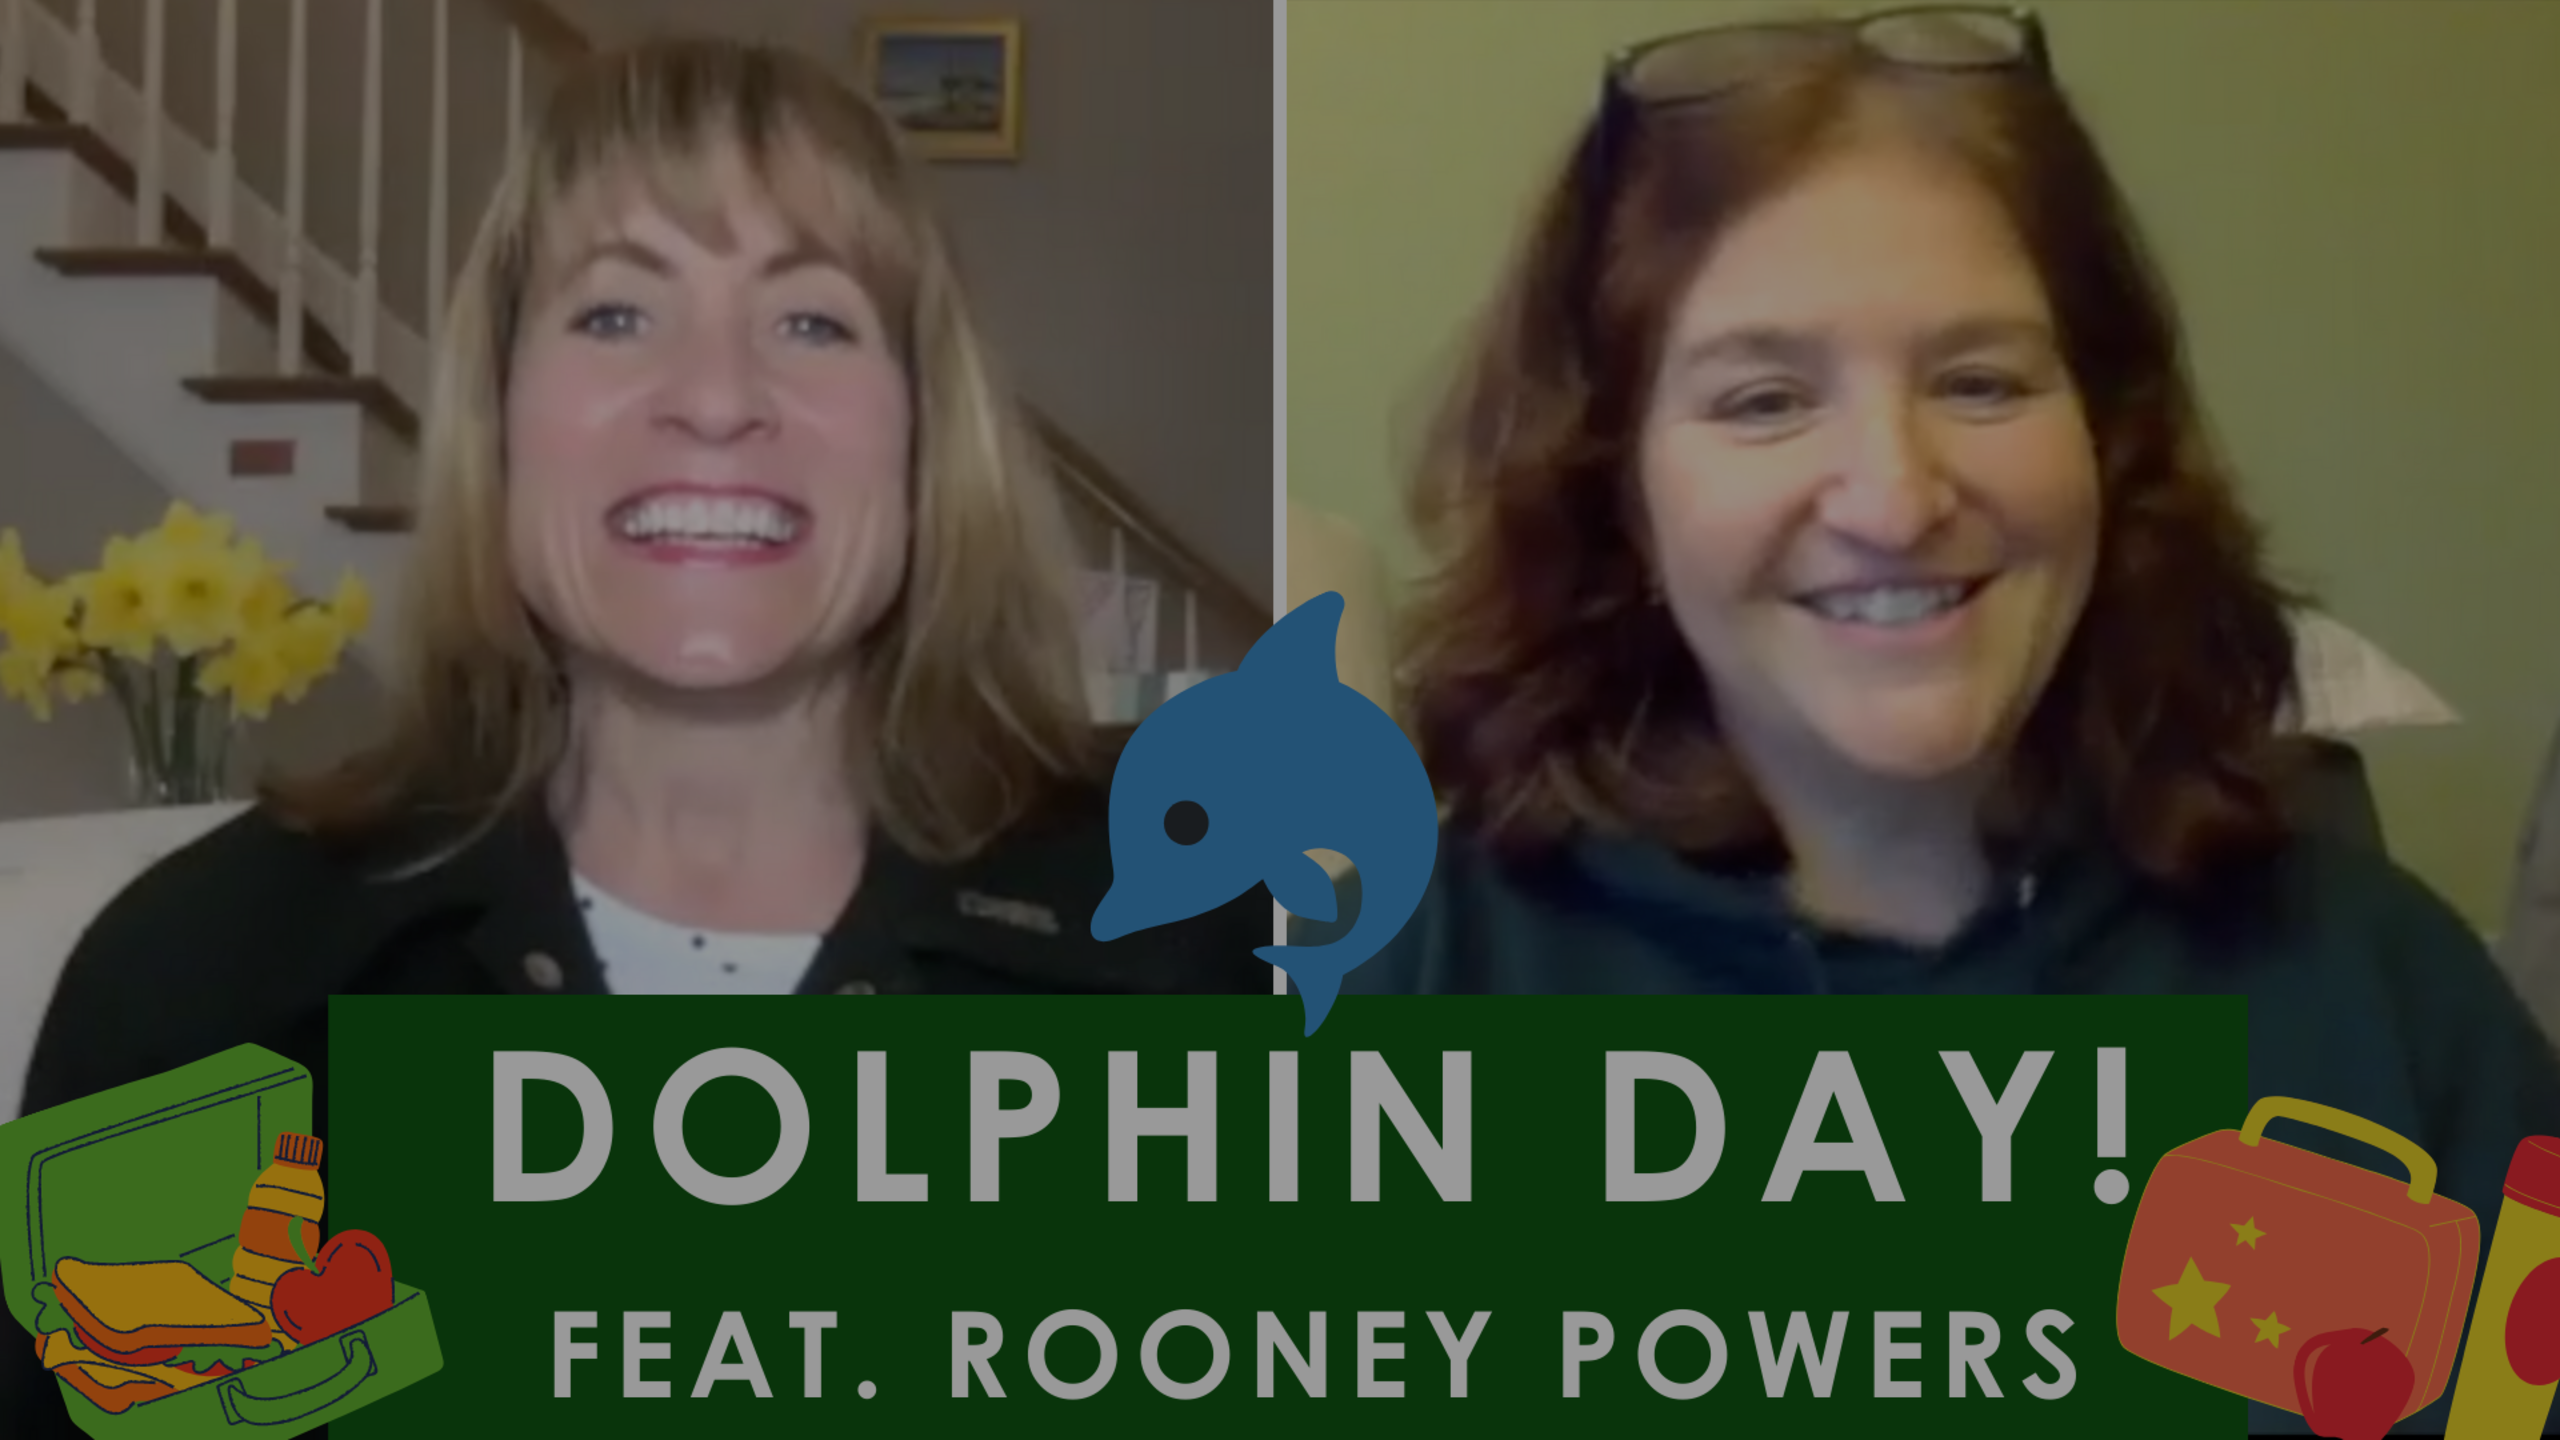 Episode 87: Dolphin Day! (feat. Rooney Powers, Food Services Director of DY)